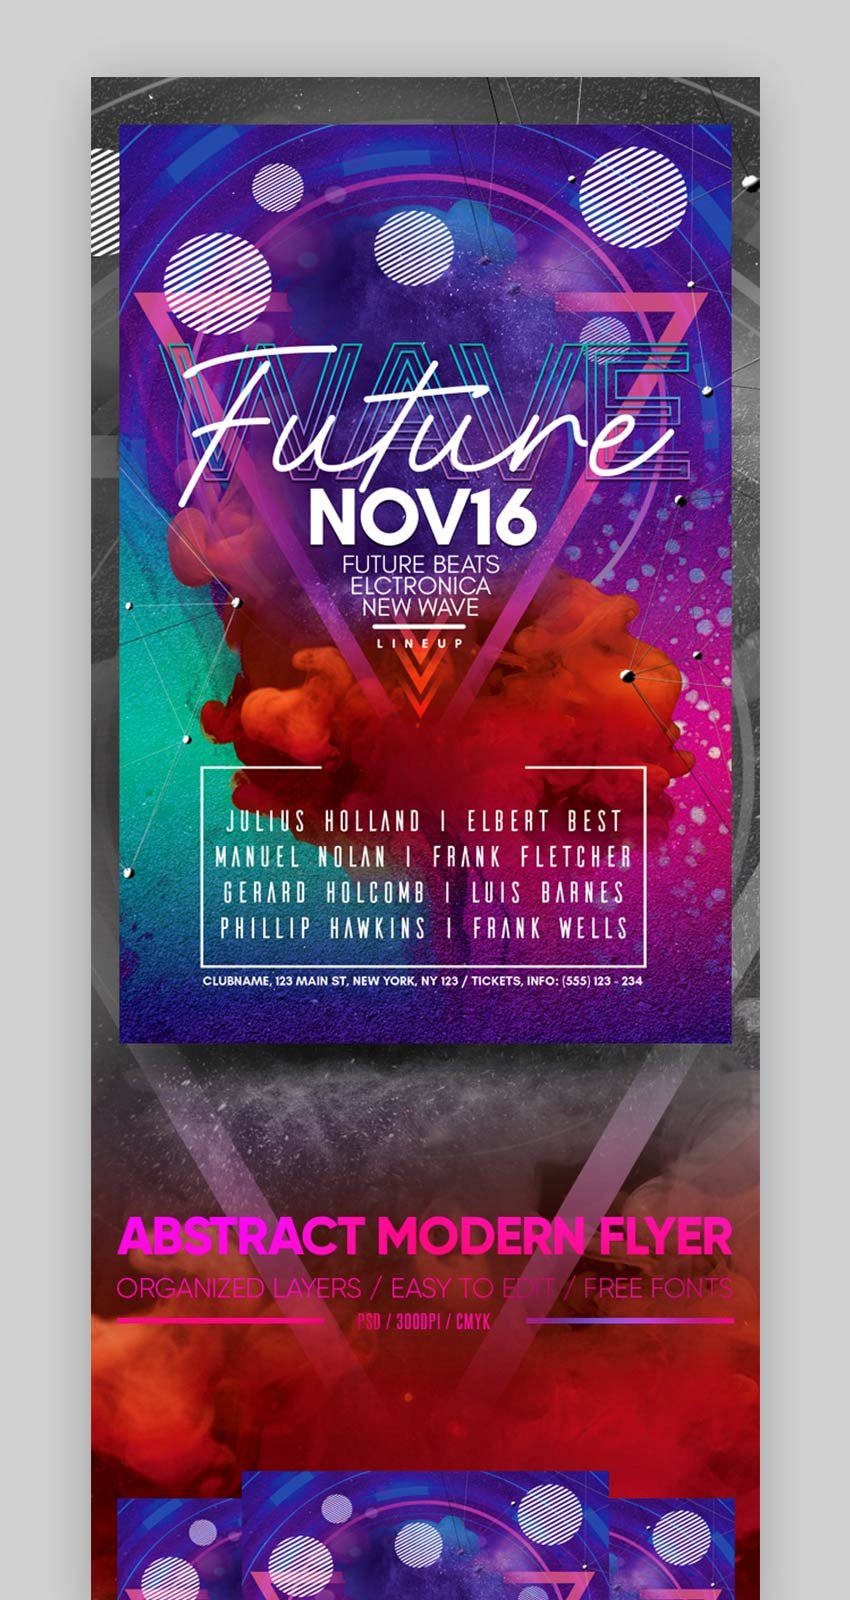 Abstract Modern Flyer